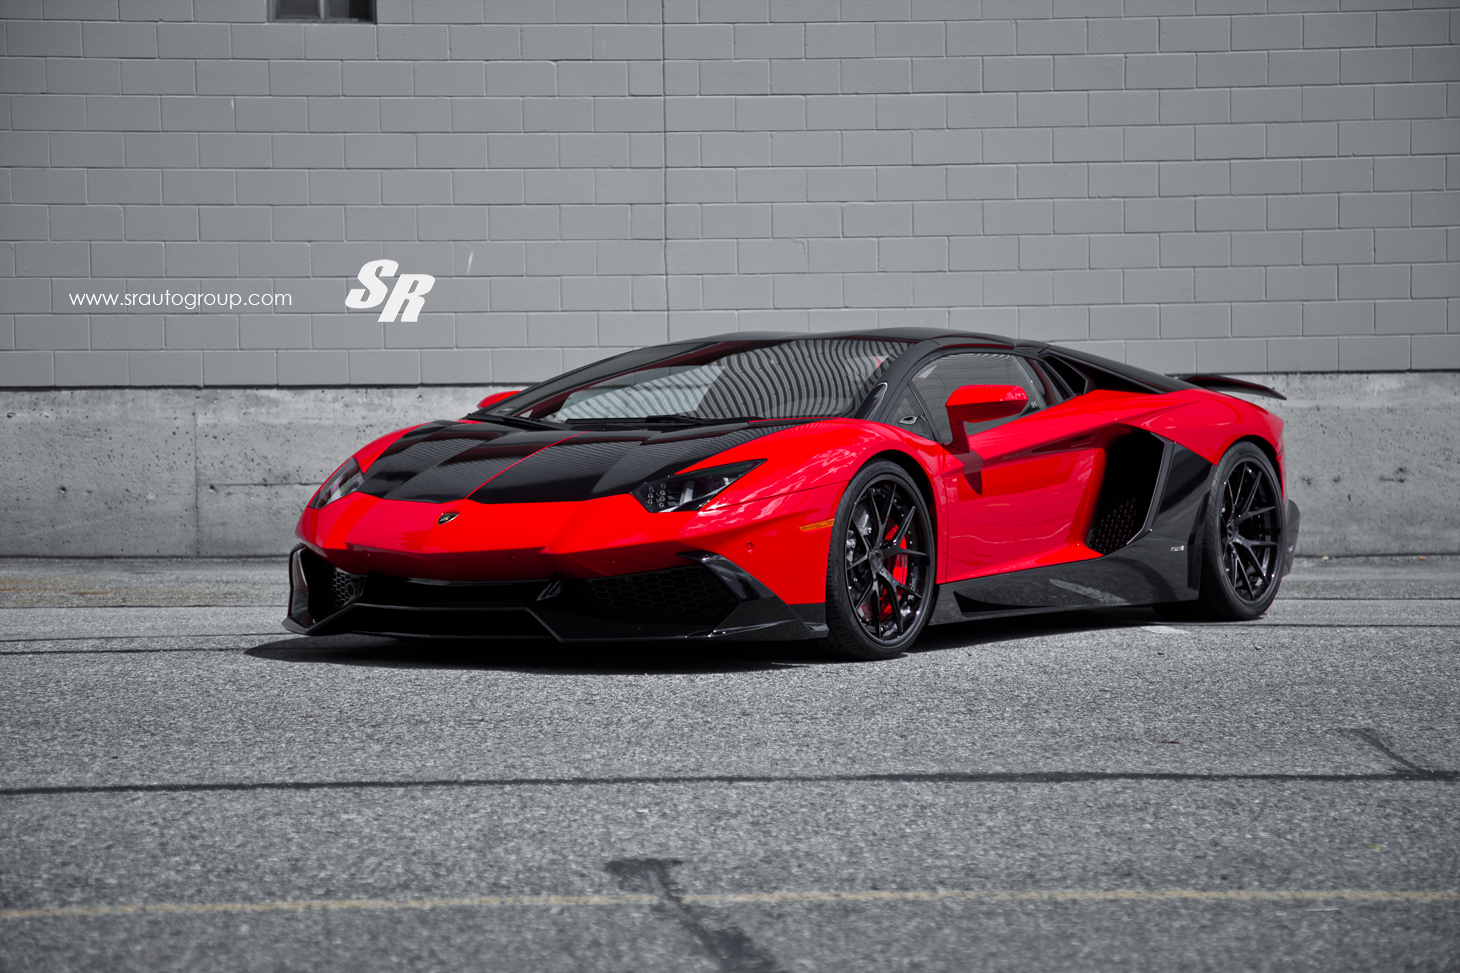 MPPSOCIETY Modified Cars shaolongli Lamborghini Aventador PUR Wheels 01